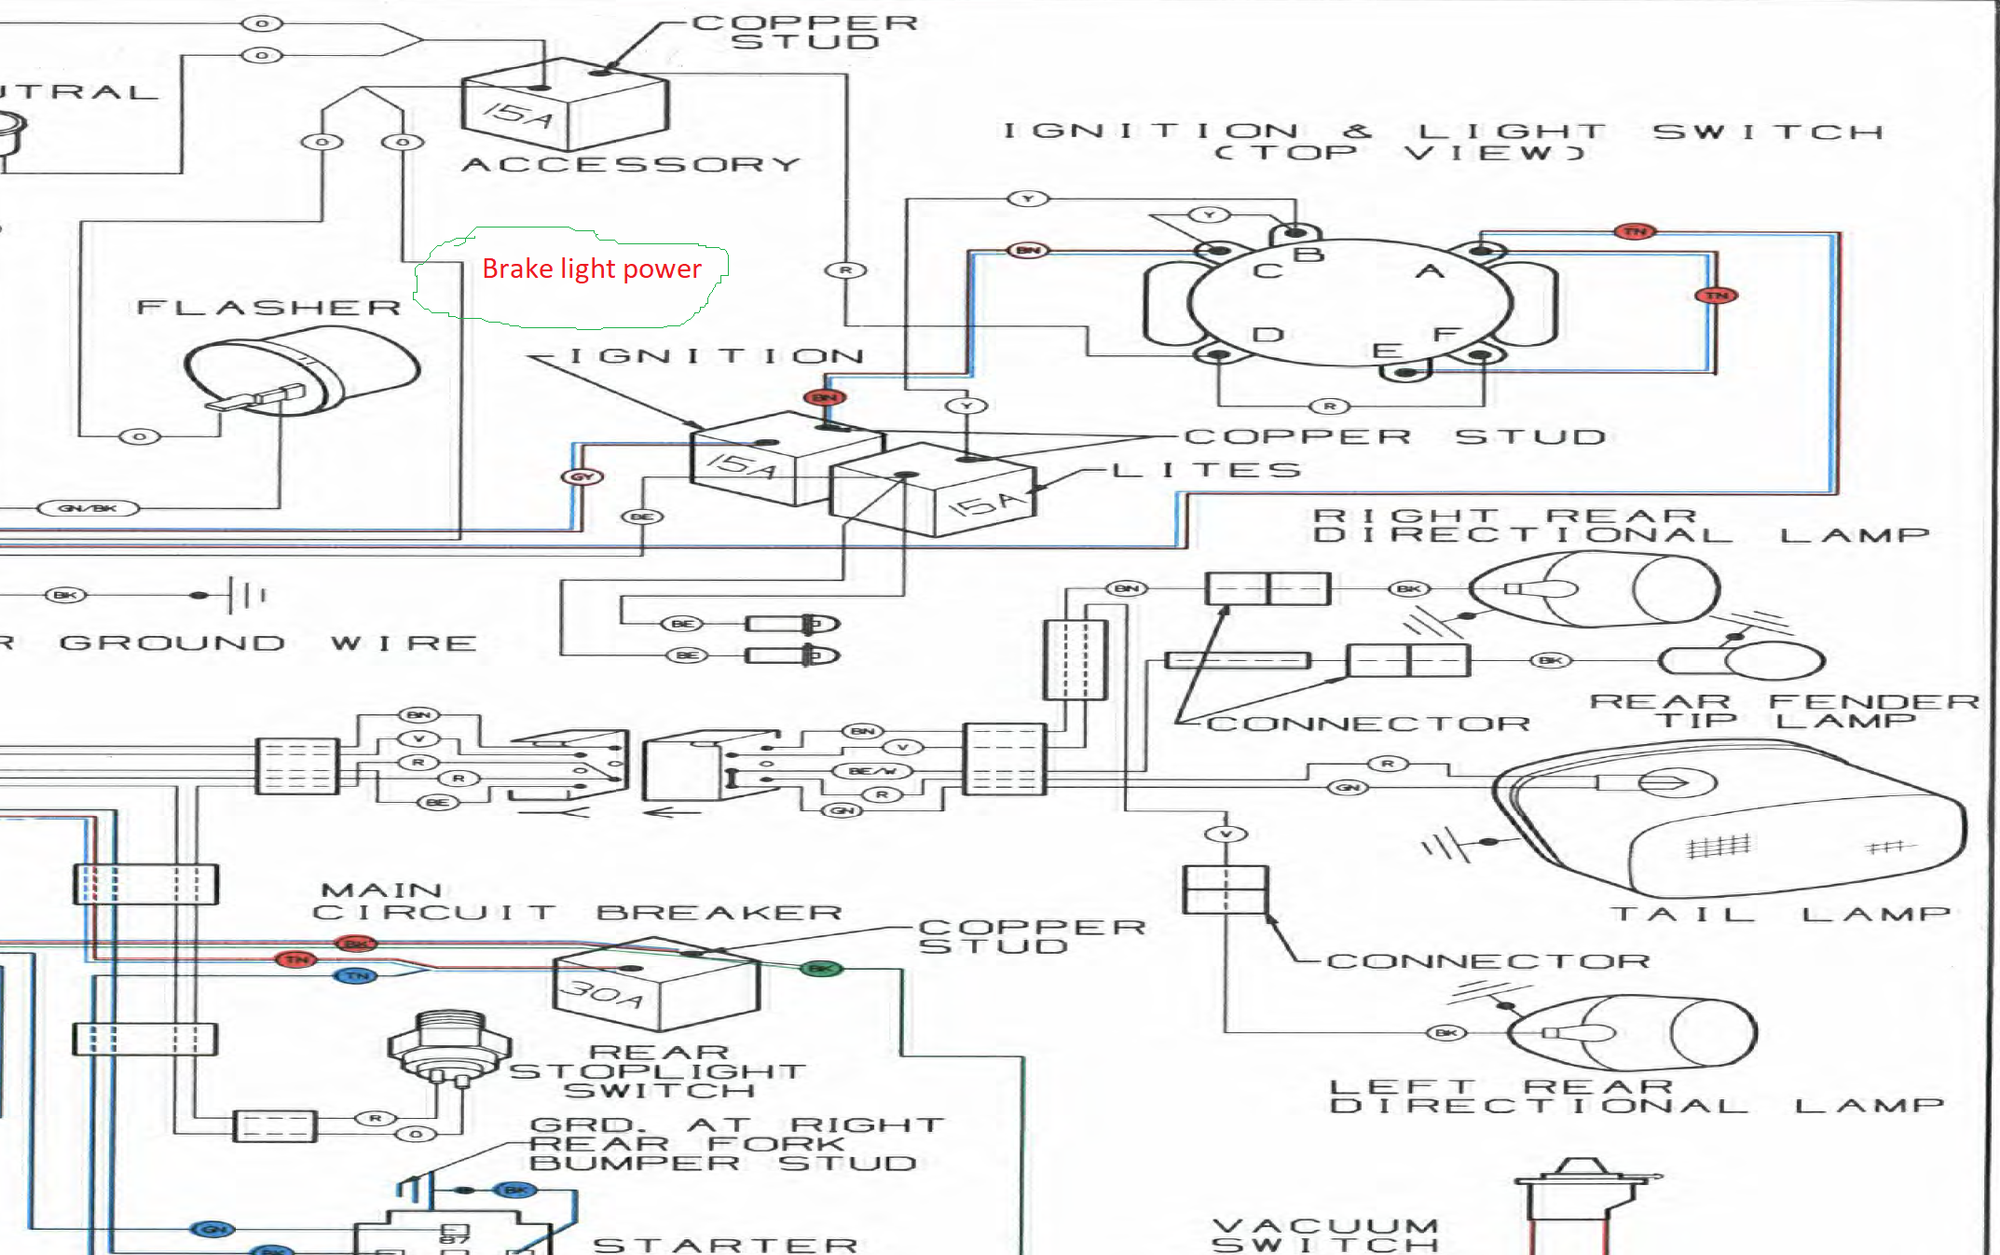 DIAGRAM] 1987 Flhtc Wiring Diagram FULL Version HD Quality Wiring Diagram -  ENGINESURFER.MAMI-WATA.FRDiagram Database - Mami Wata